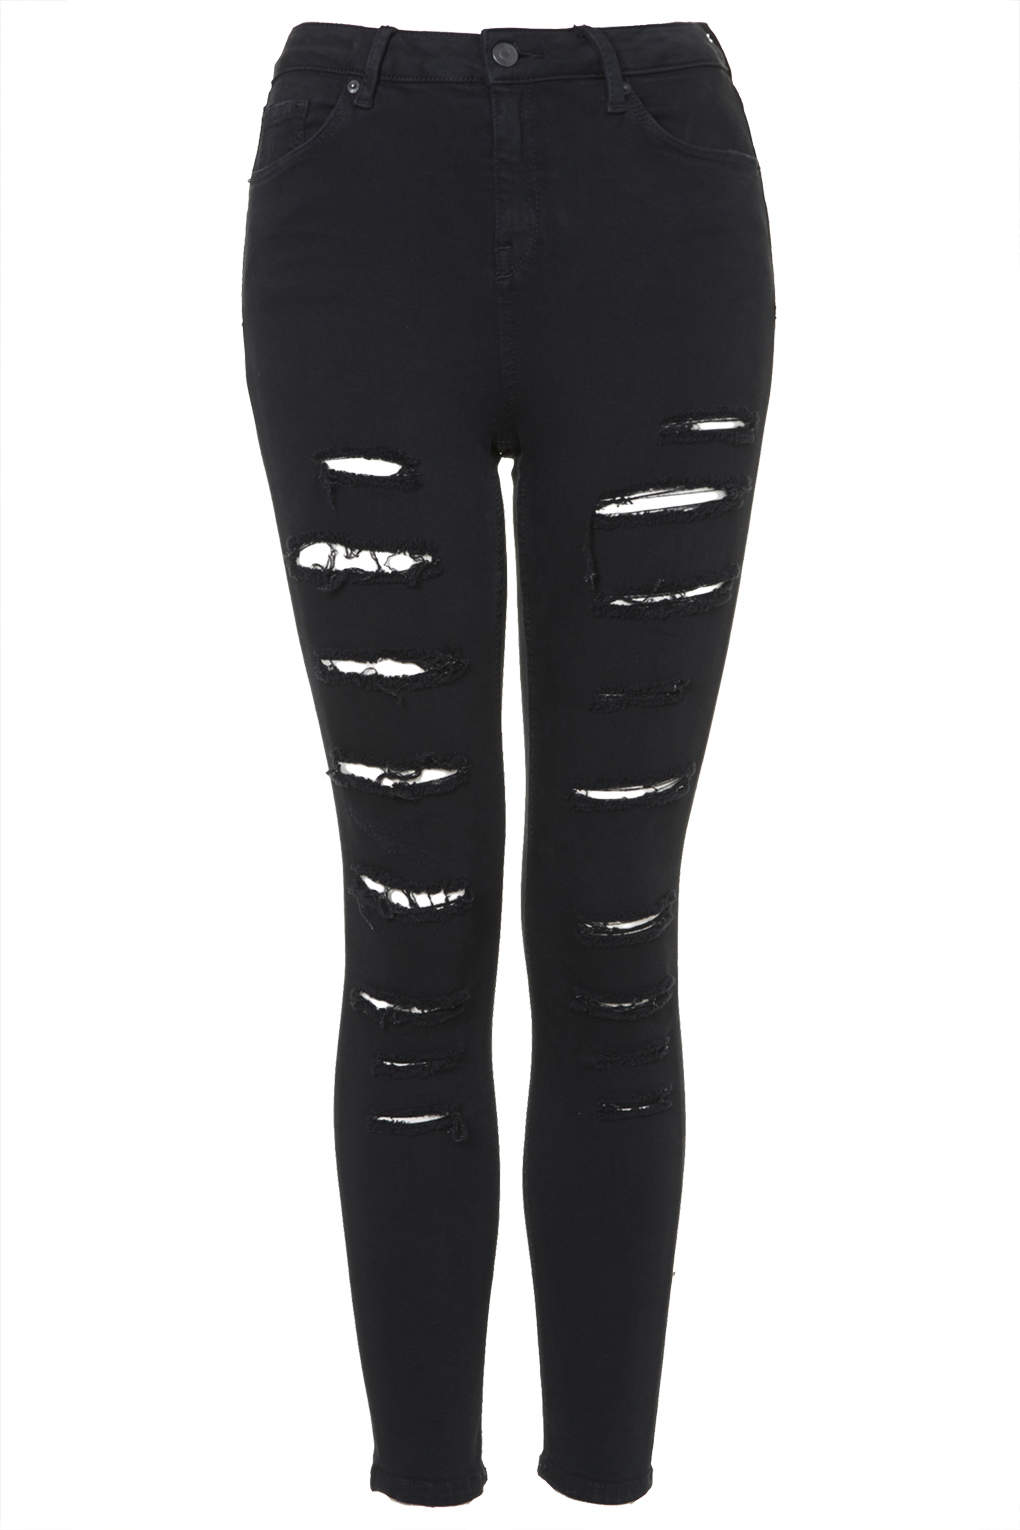 Black Super Ripped Jamie Jeans - Jamie Skinny Jeans - Jeans - Clothing